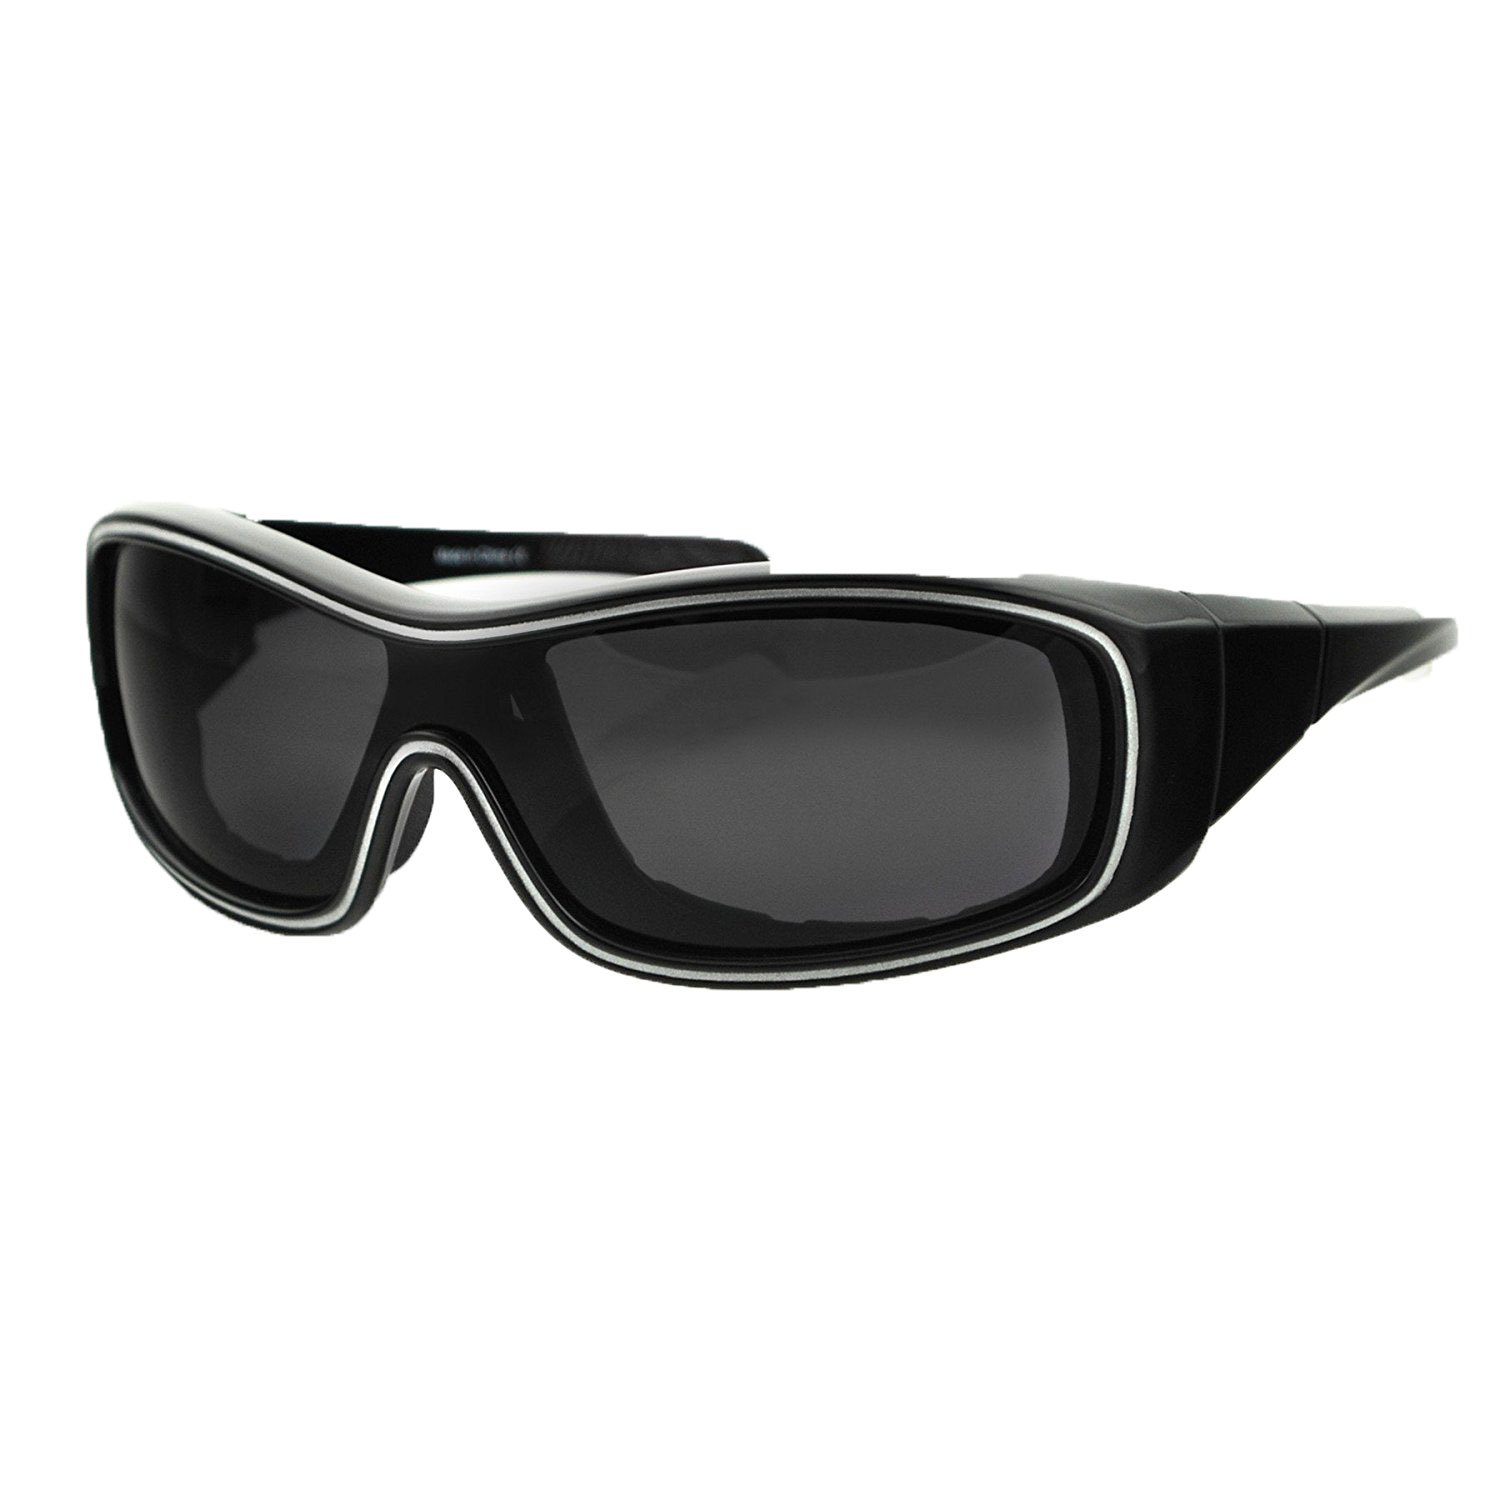 Bobster Zoe Convertible Oval Sunglasses,Black Frame/Smoked Anti Fog Lens,One Size